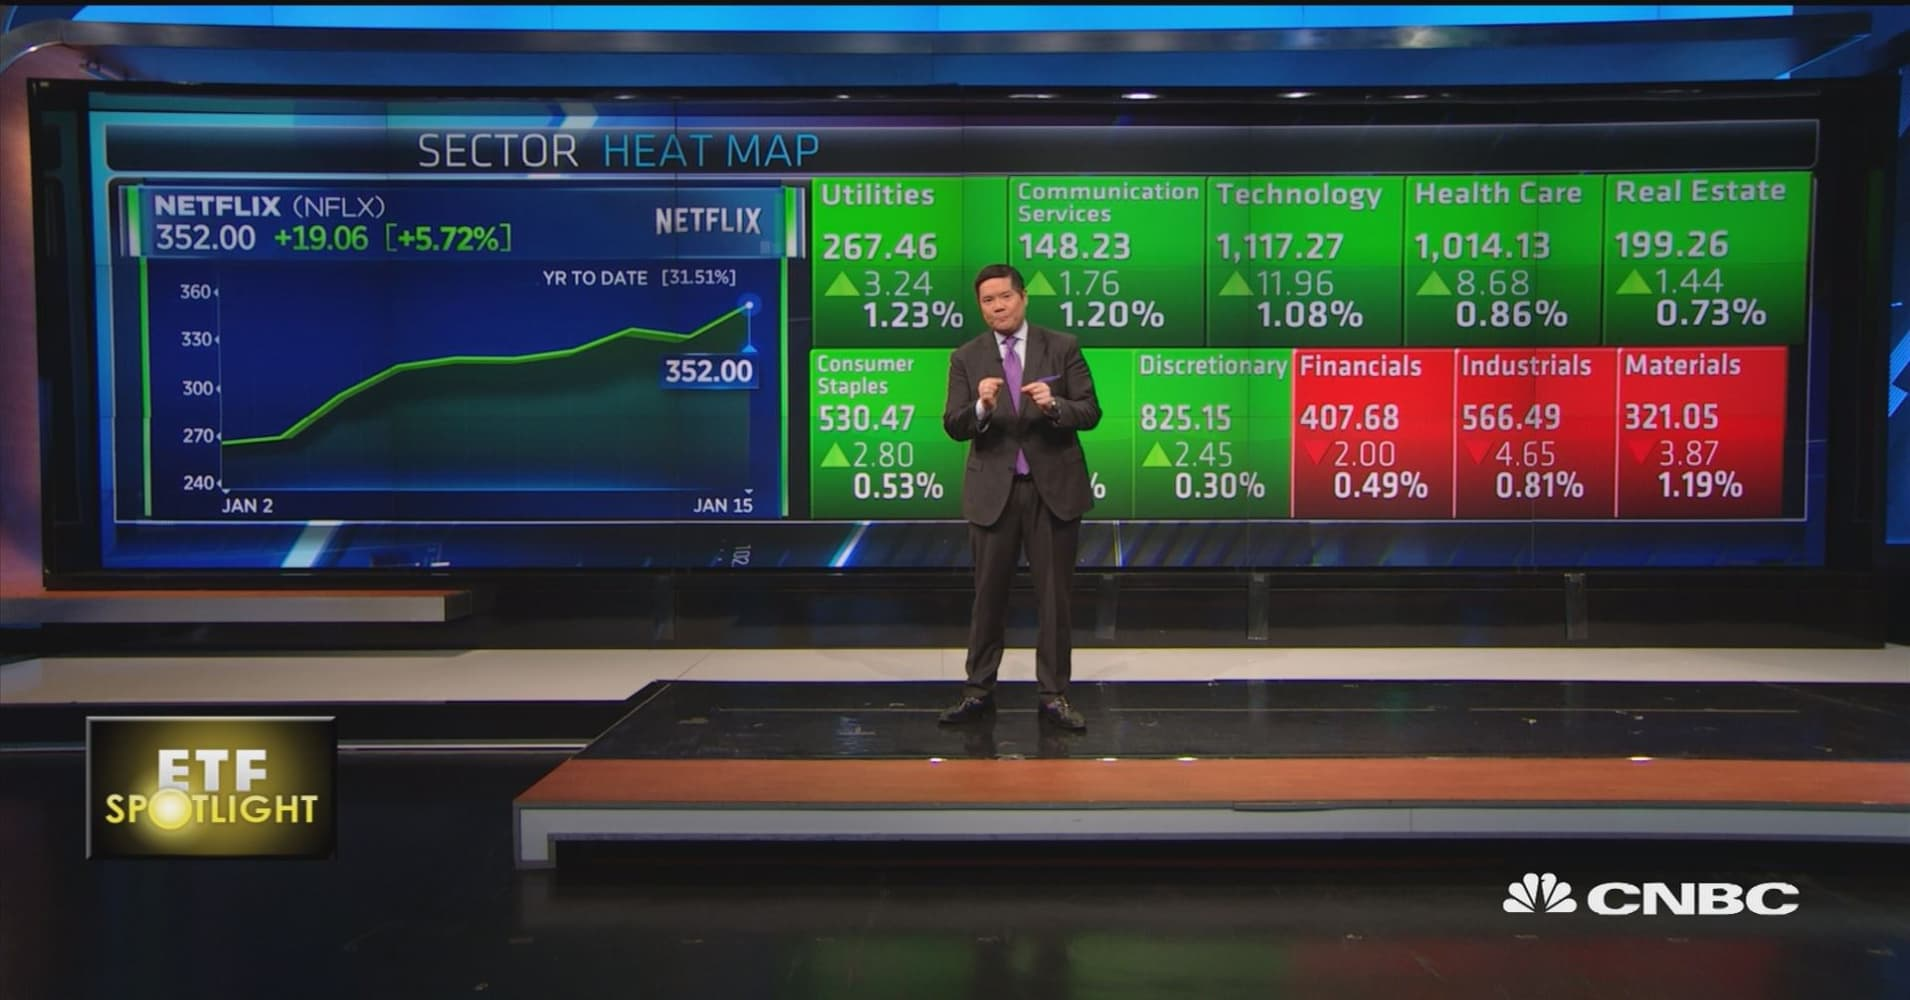 ETF Spotlight: Netflix is the best performer of the day